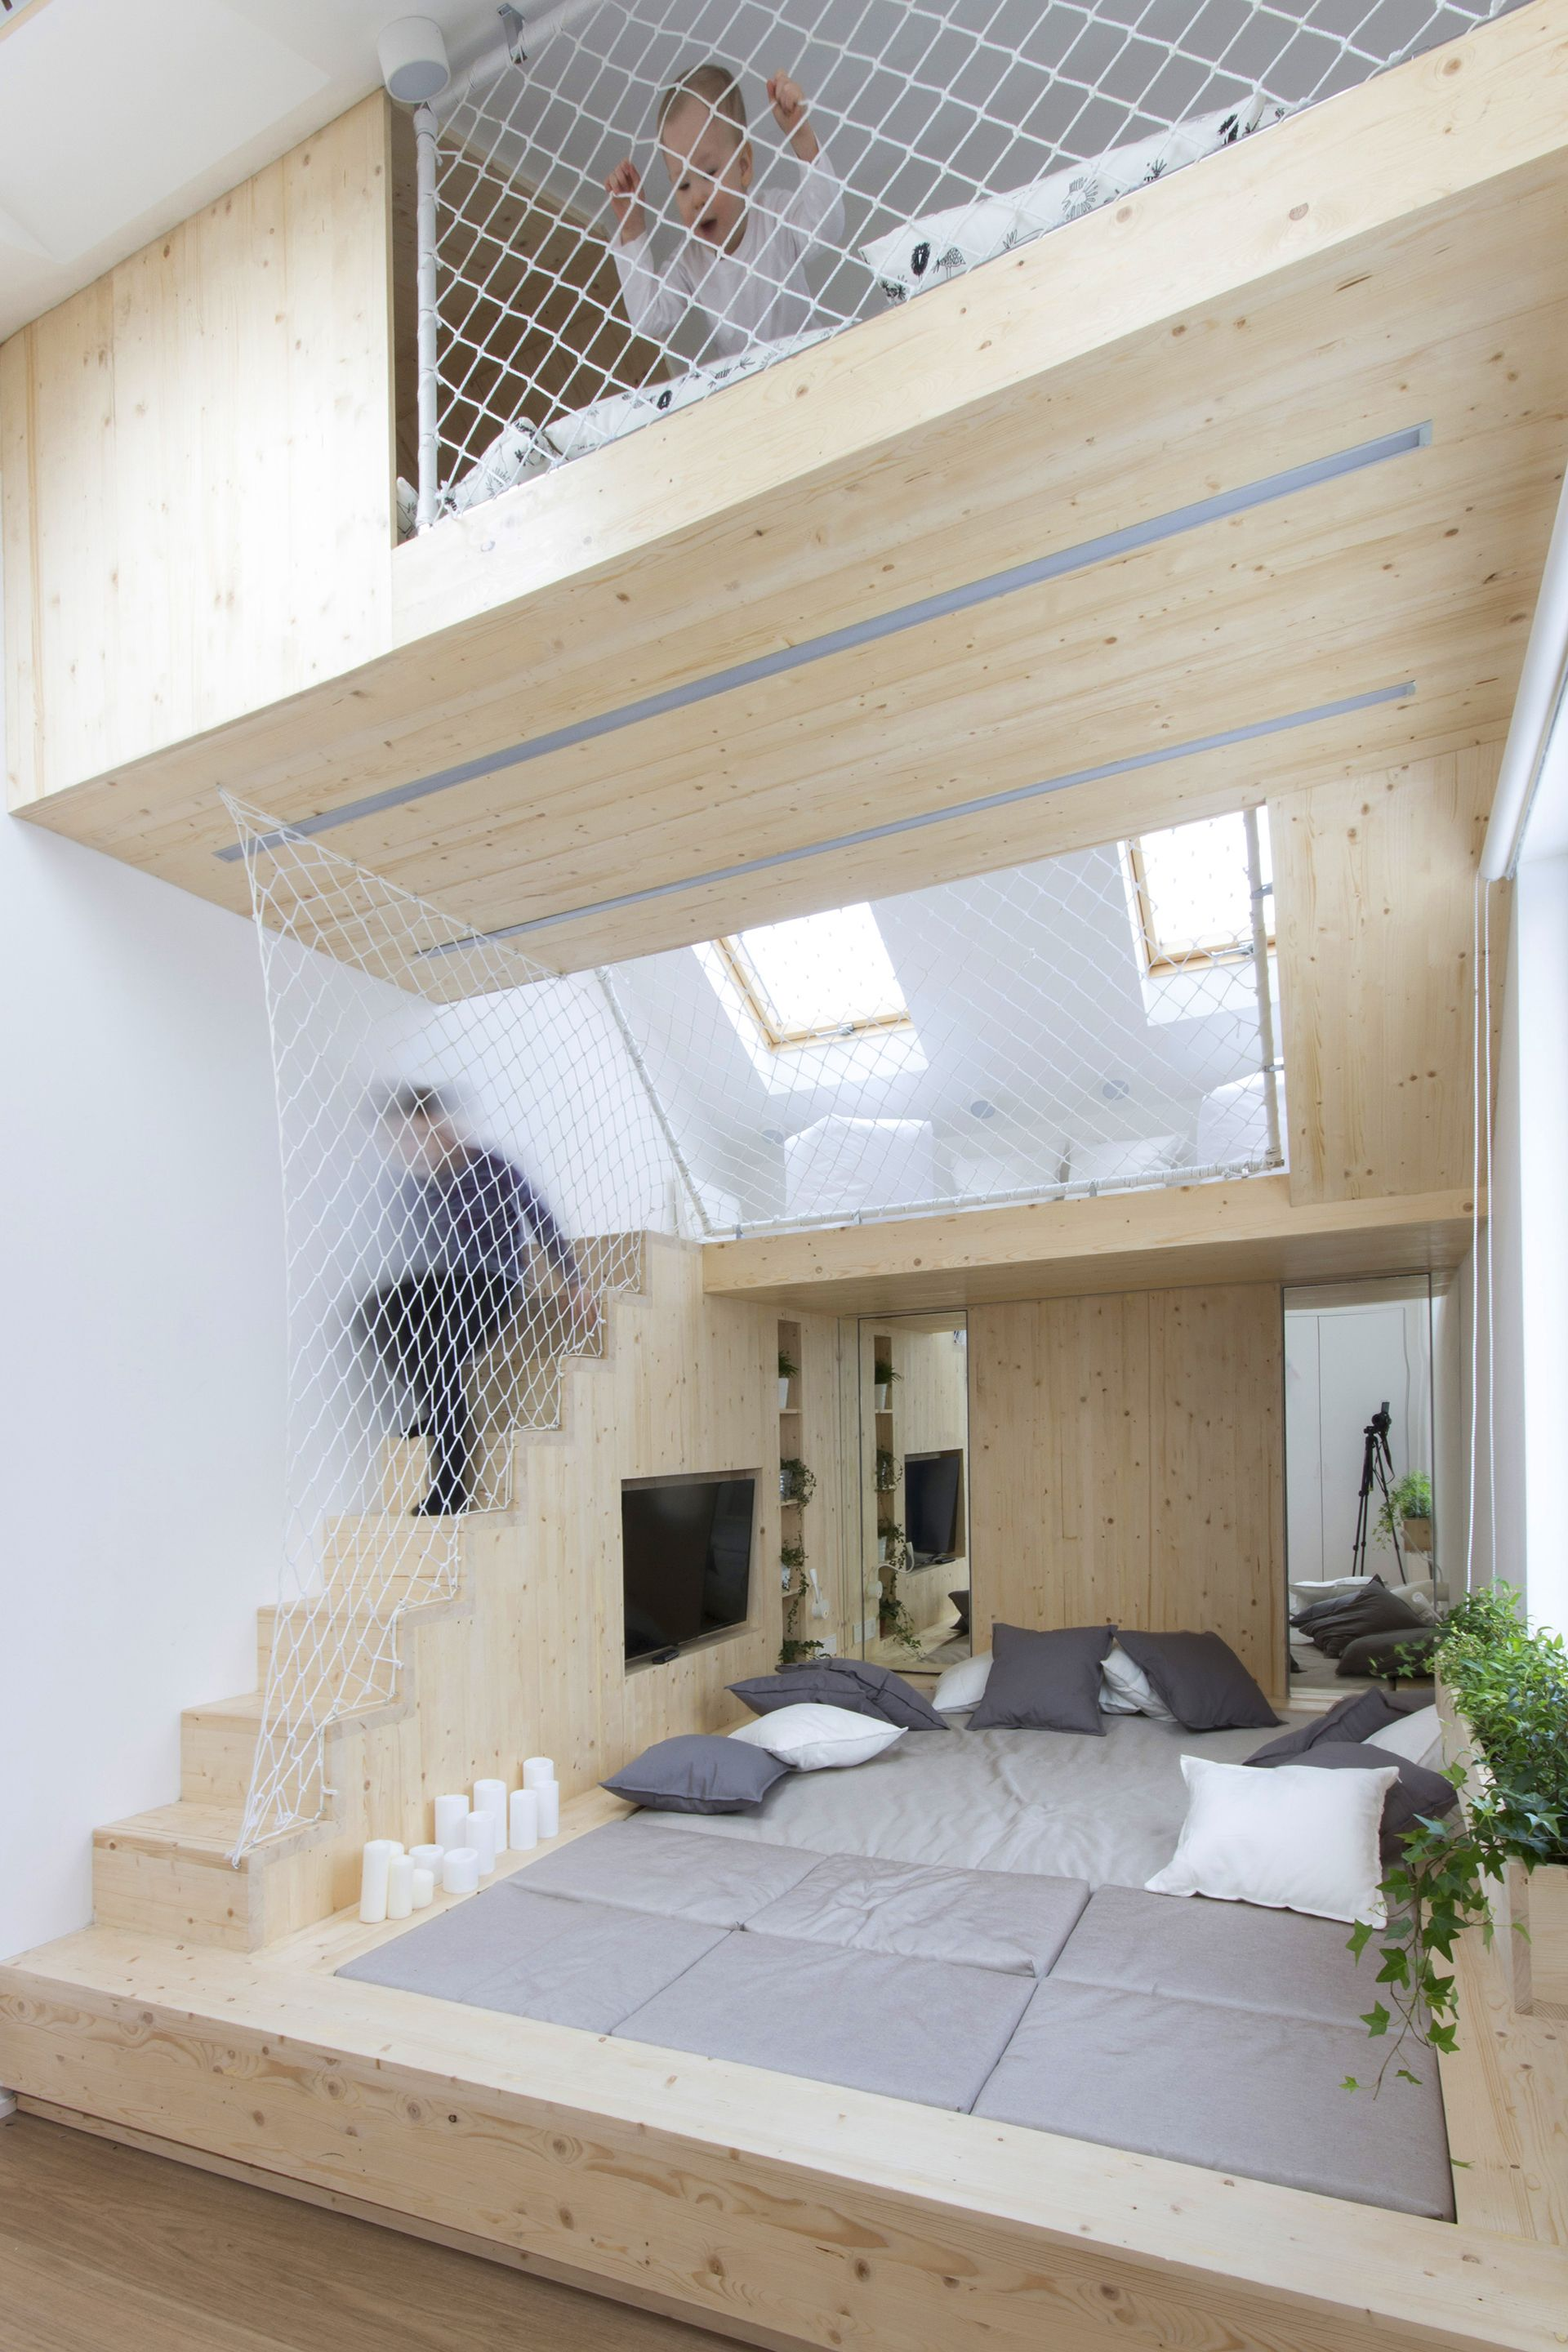 Kids Bedroom Mezzanine sleep and play - multifunctional spaces - ruetemple - moscow